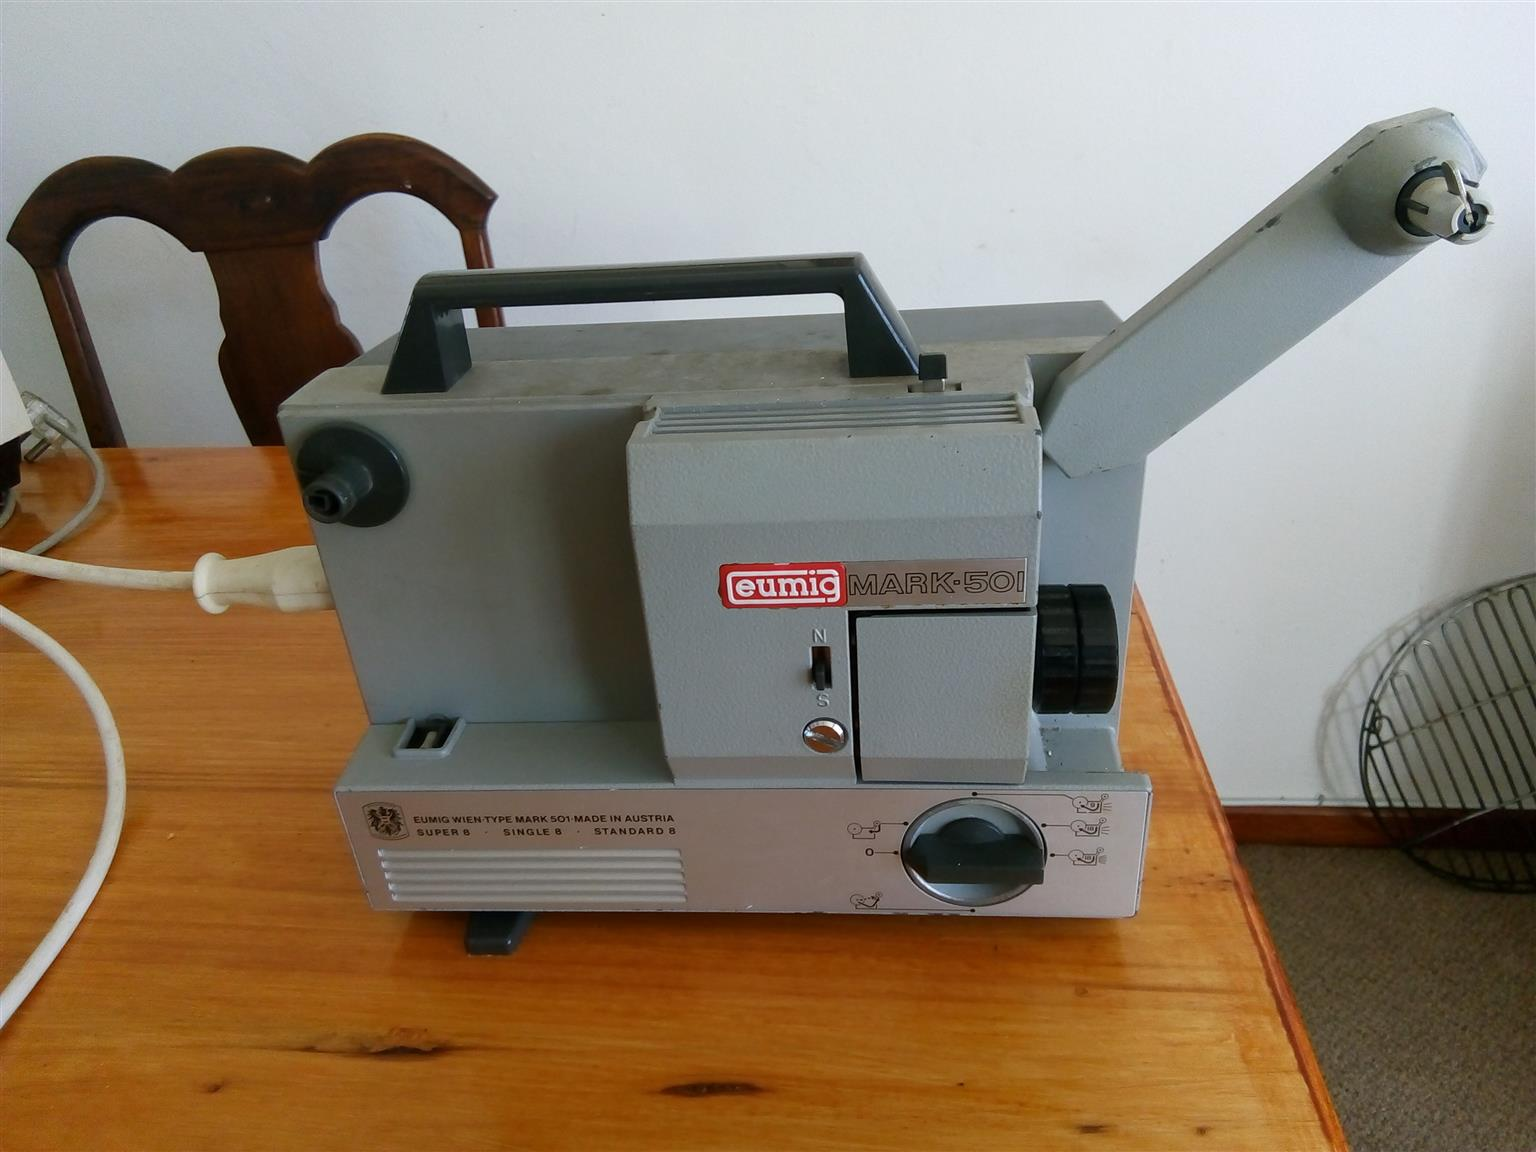 Super 8mm and 8mm Cinea Projector - Eumig Mark-501 projector  +  Viewer   +   Splicing tool